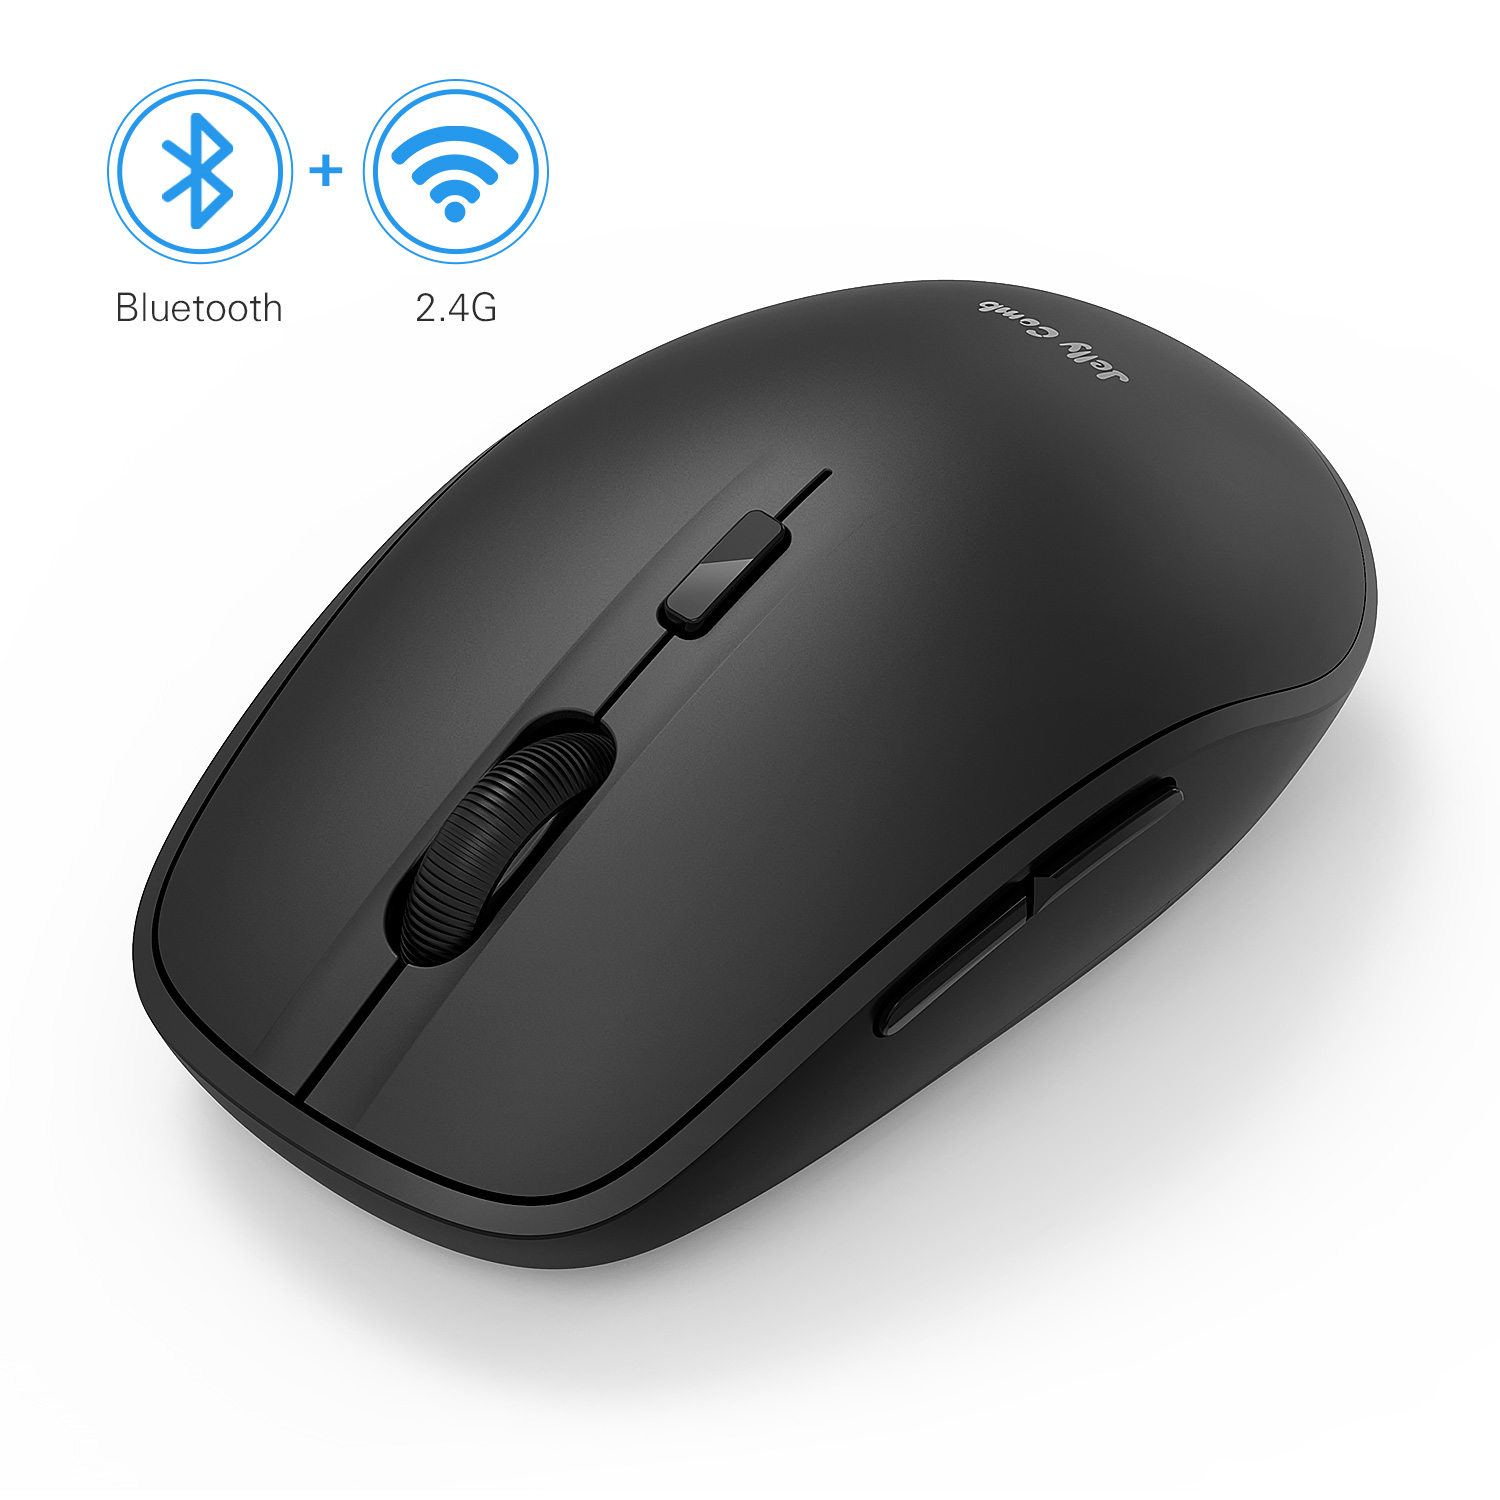 Wireless Vertical Mouse Ergonomic Optical Gaming Mouse Adjustable DP 800 1200 1600 Support USB Charging Mouse 2.4G Wireless 10 M Connection Compatible with Windows and Mac